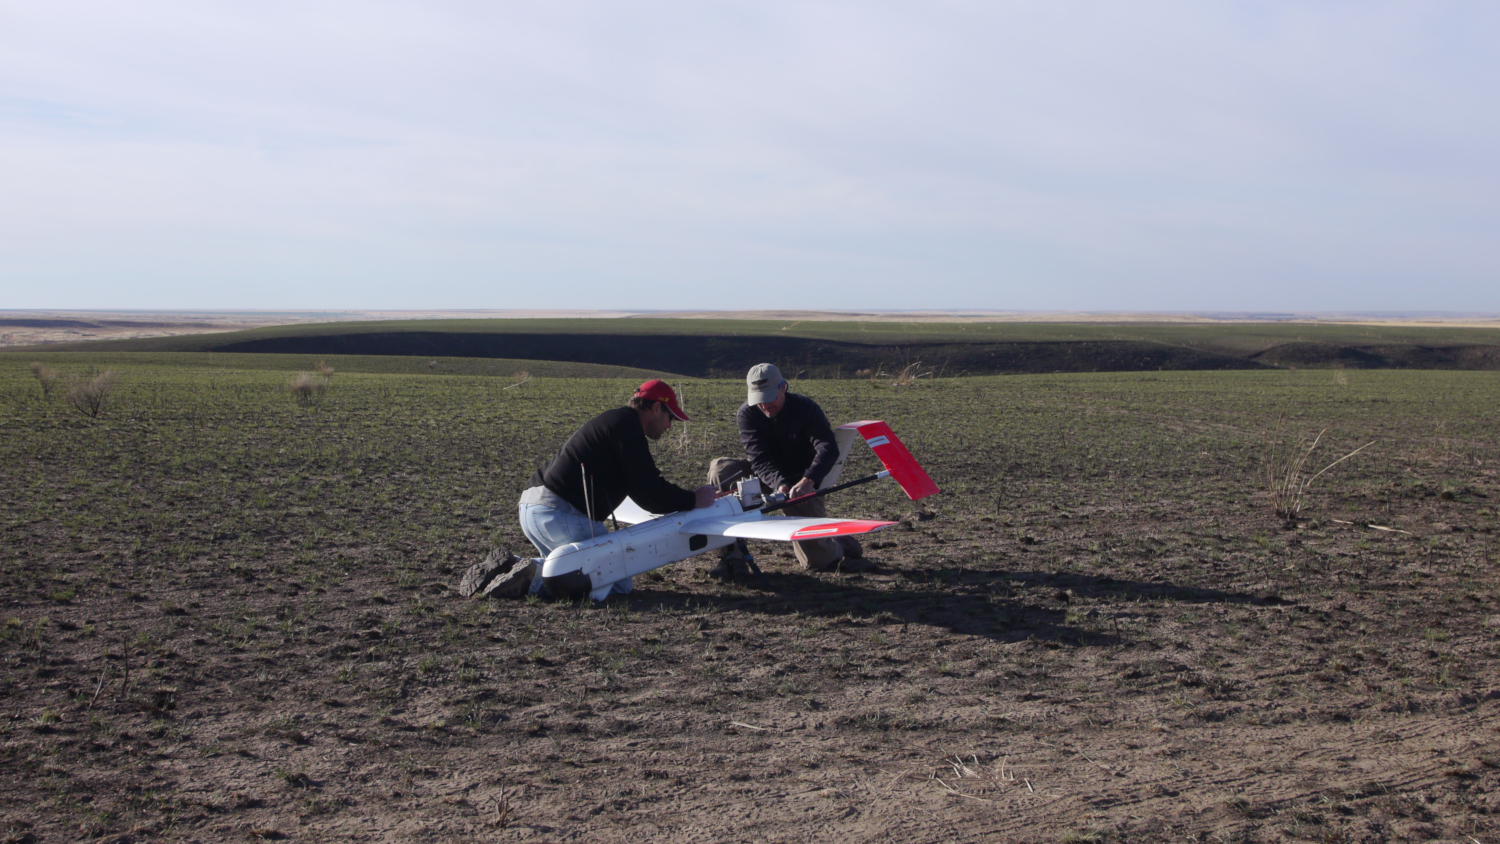 The drones used in this operation were able to cover hundreds of mapped polygons a day and the imagery produced will help make the BLM Spokane District make more accurate classifications of the sag-grouse habitat. (credits: Bureau of Land Management Oregon and Washington / Flickr Creative Commons Attribution 2.0 Generic (CC BY 2.0))